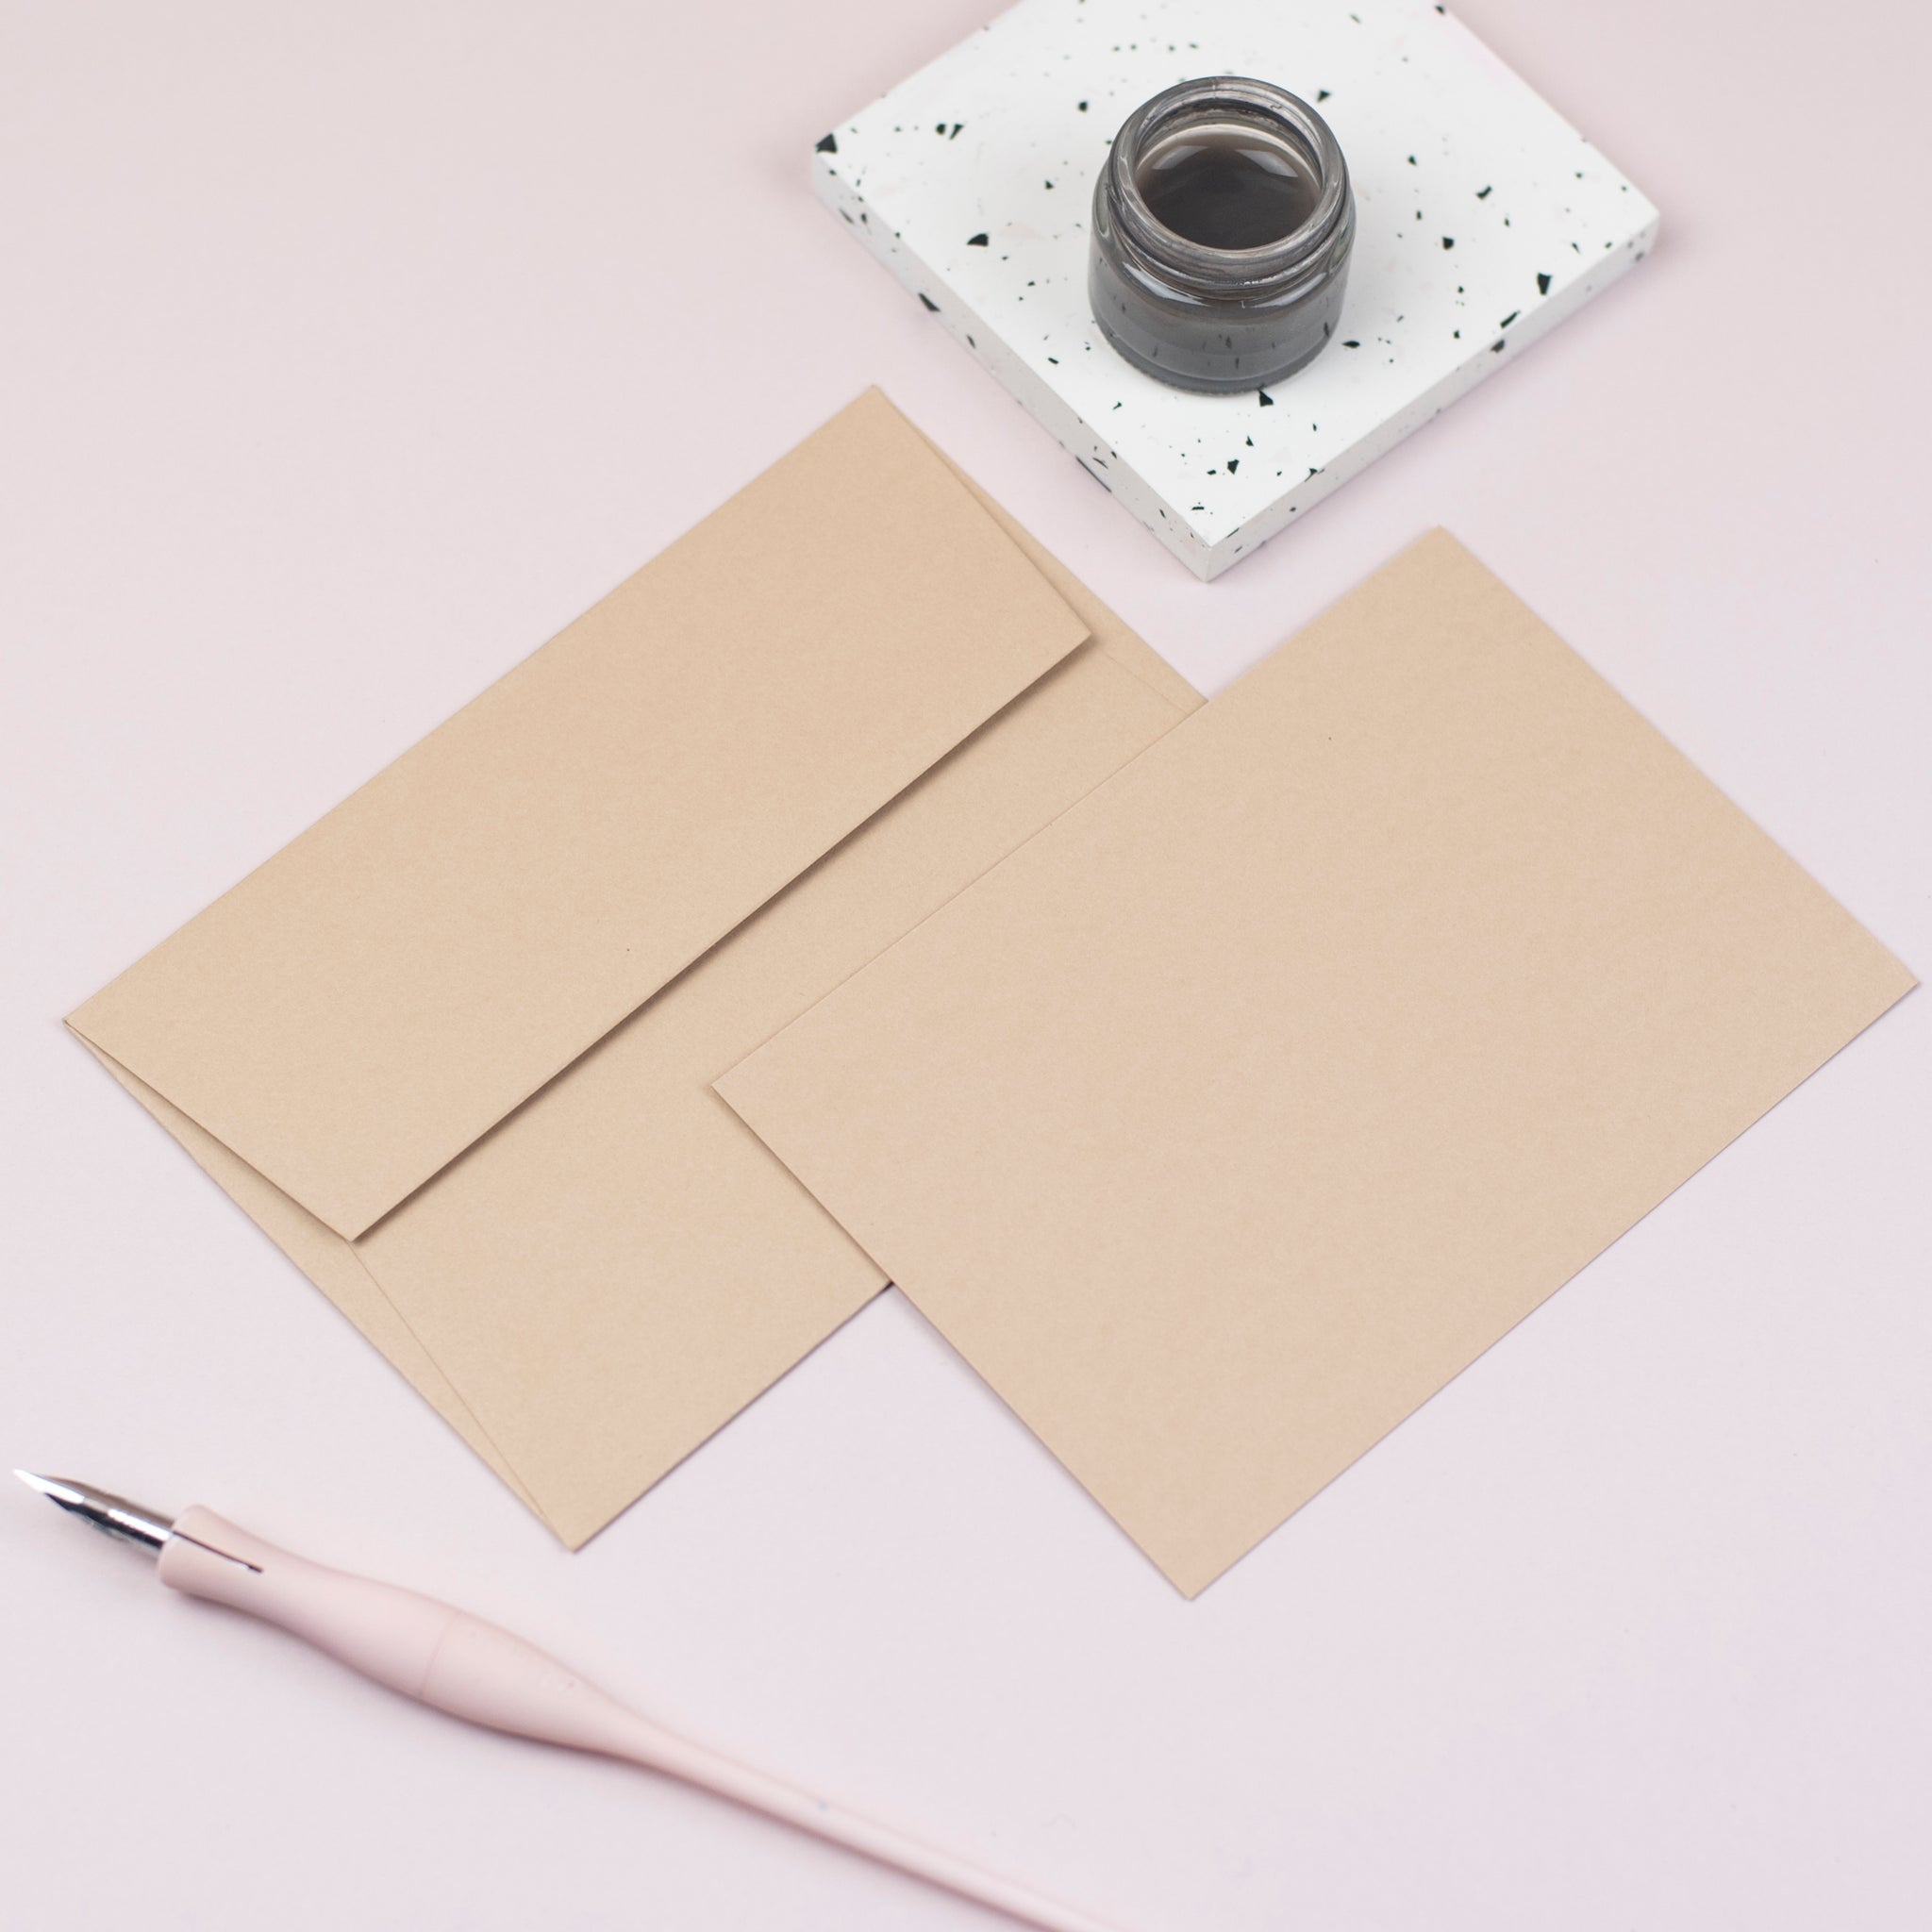 Luxury sand notecards and envelopes